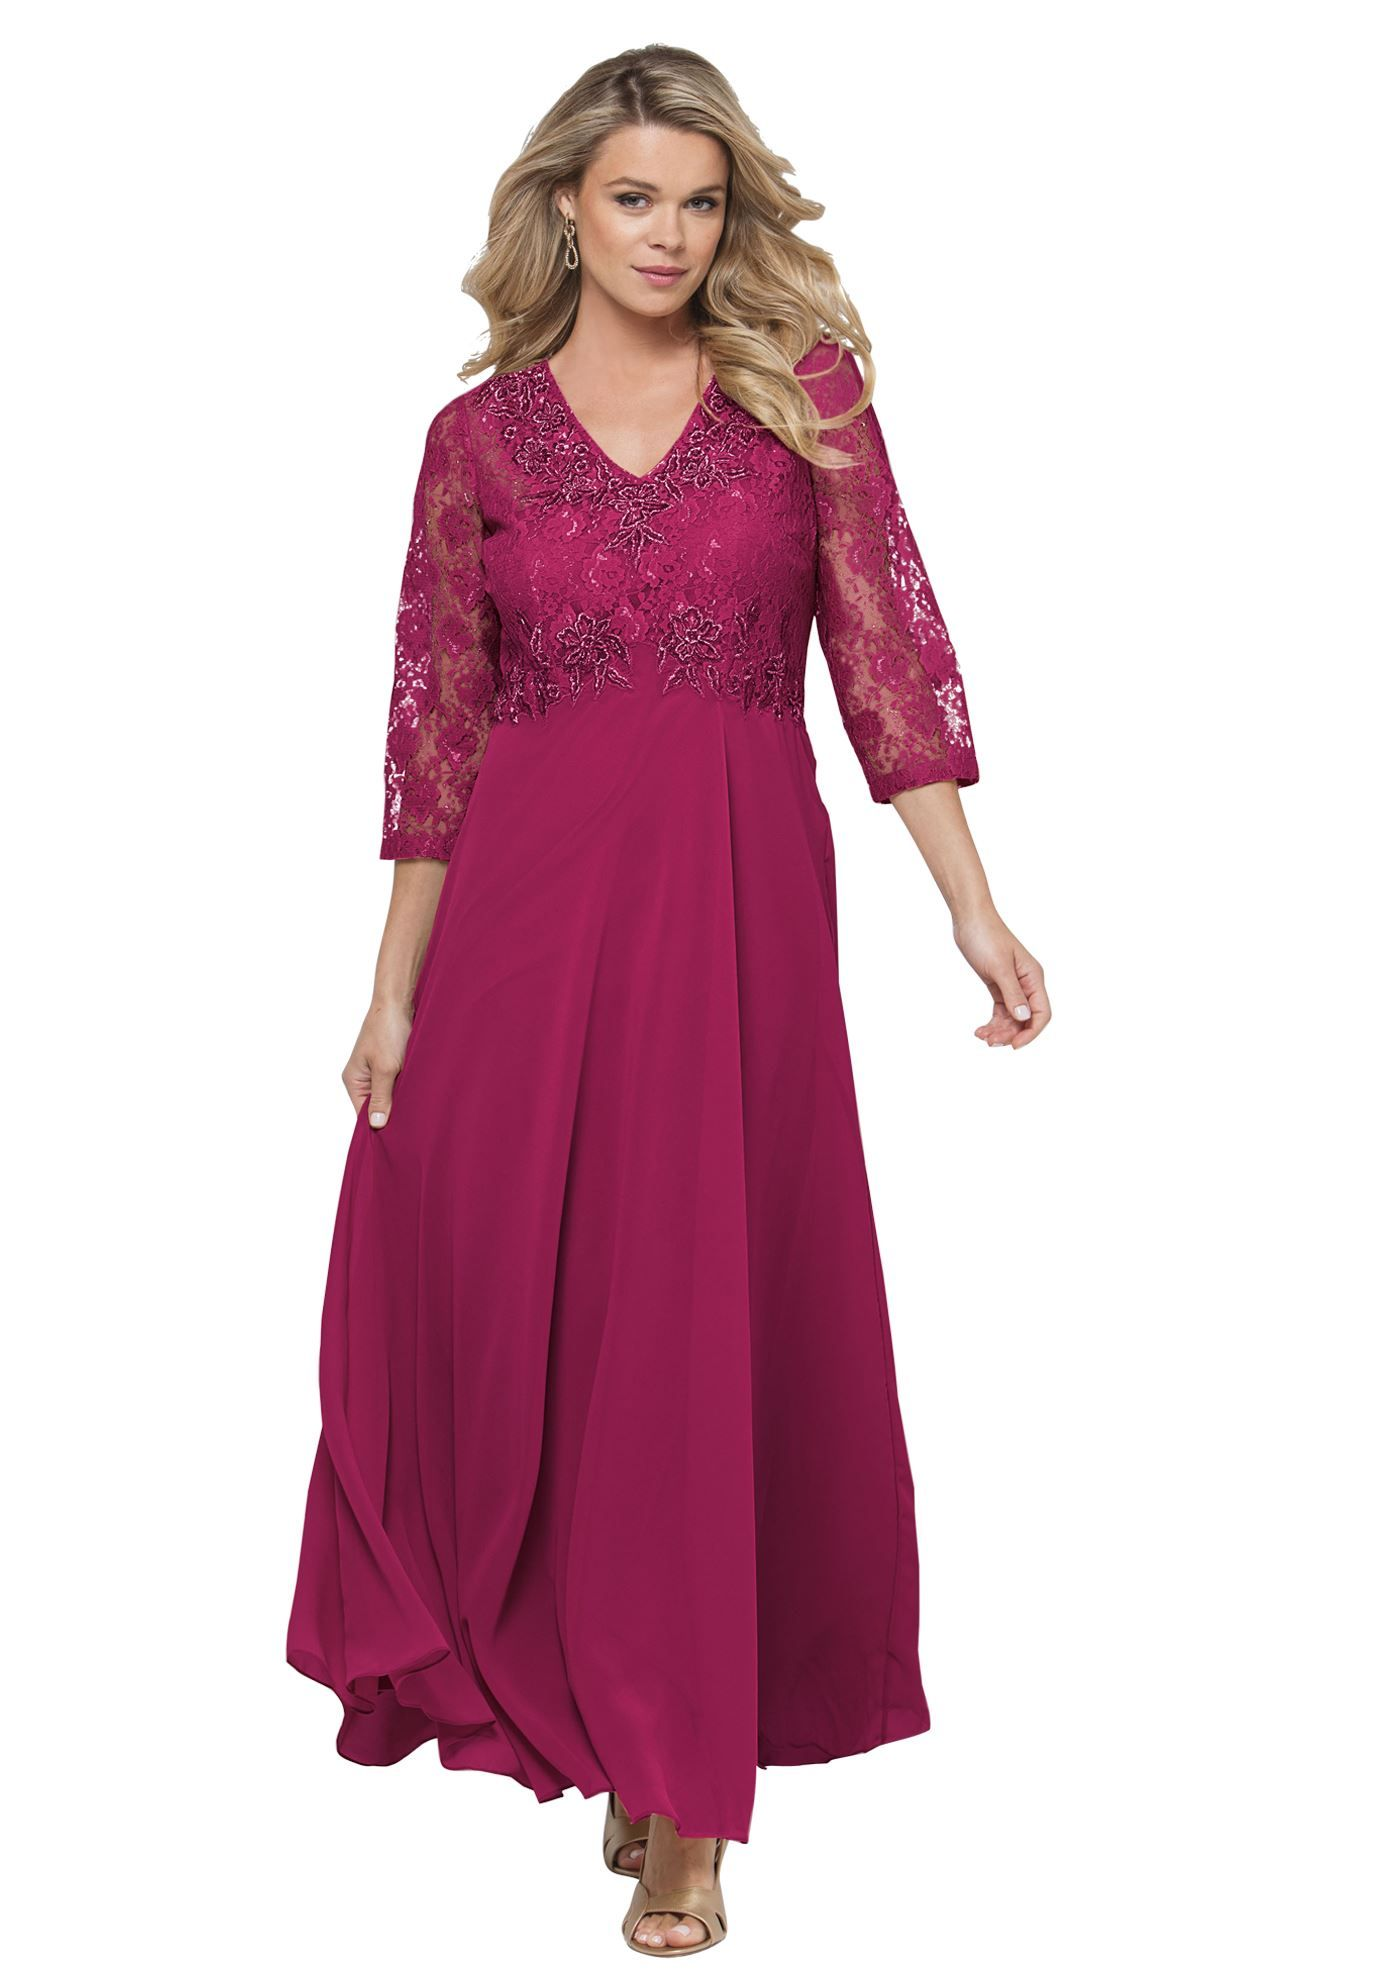 This lovely plus size dress is adorned with alluring lace aline